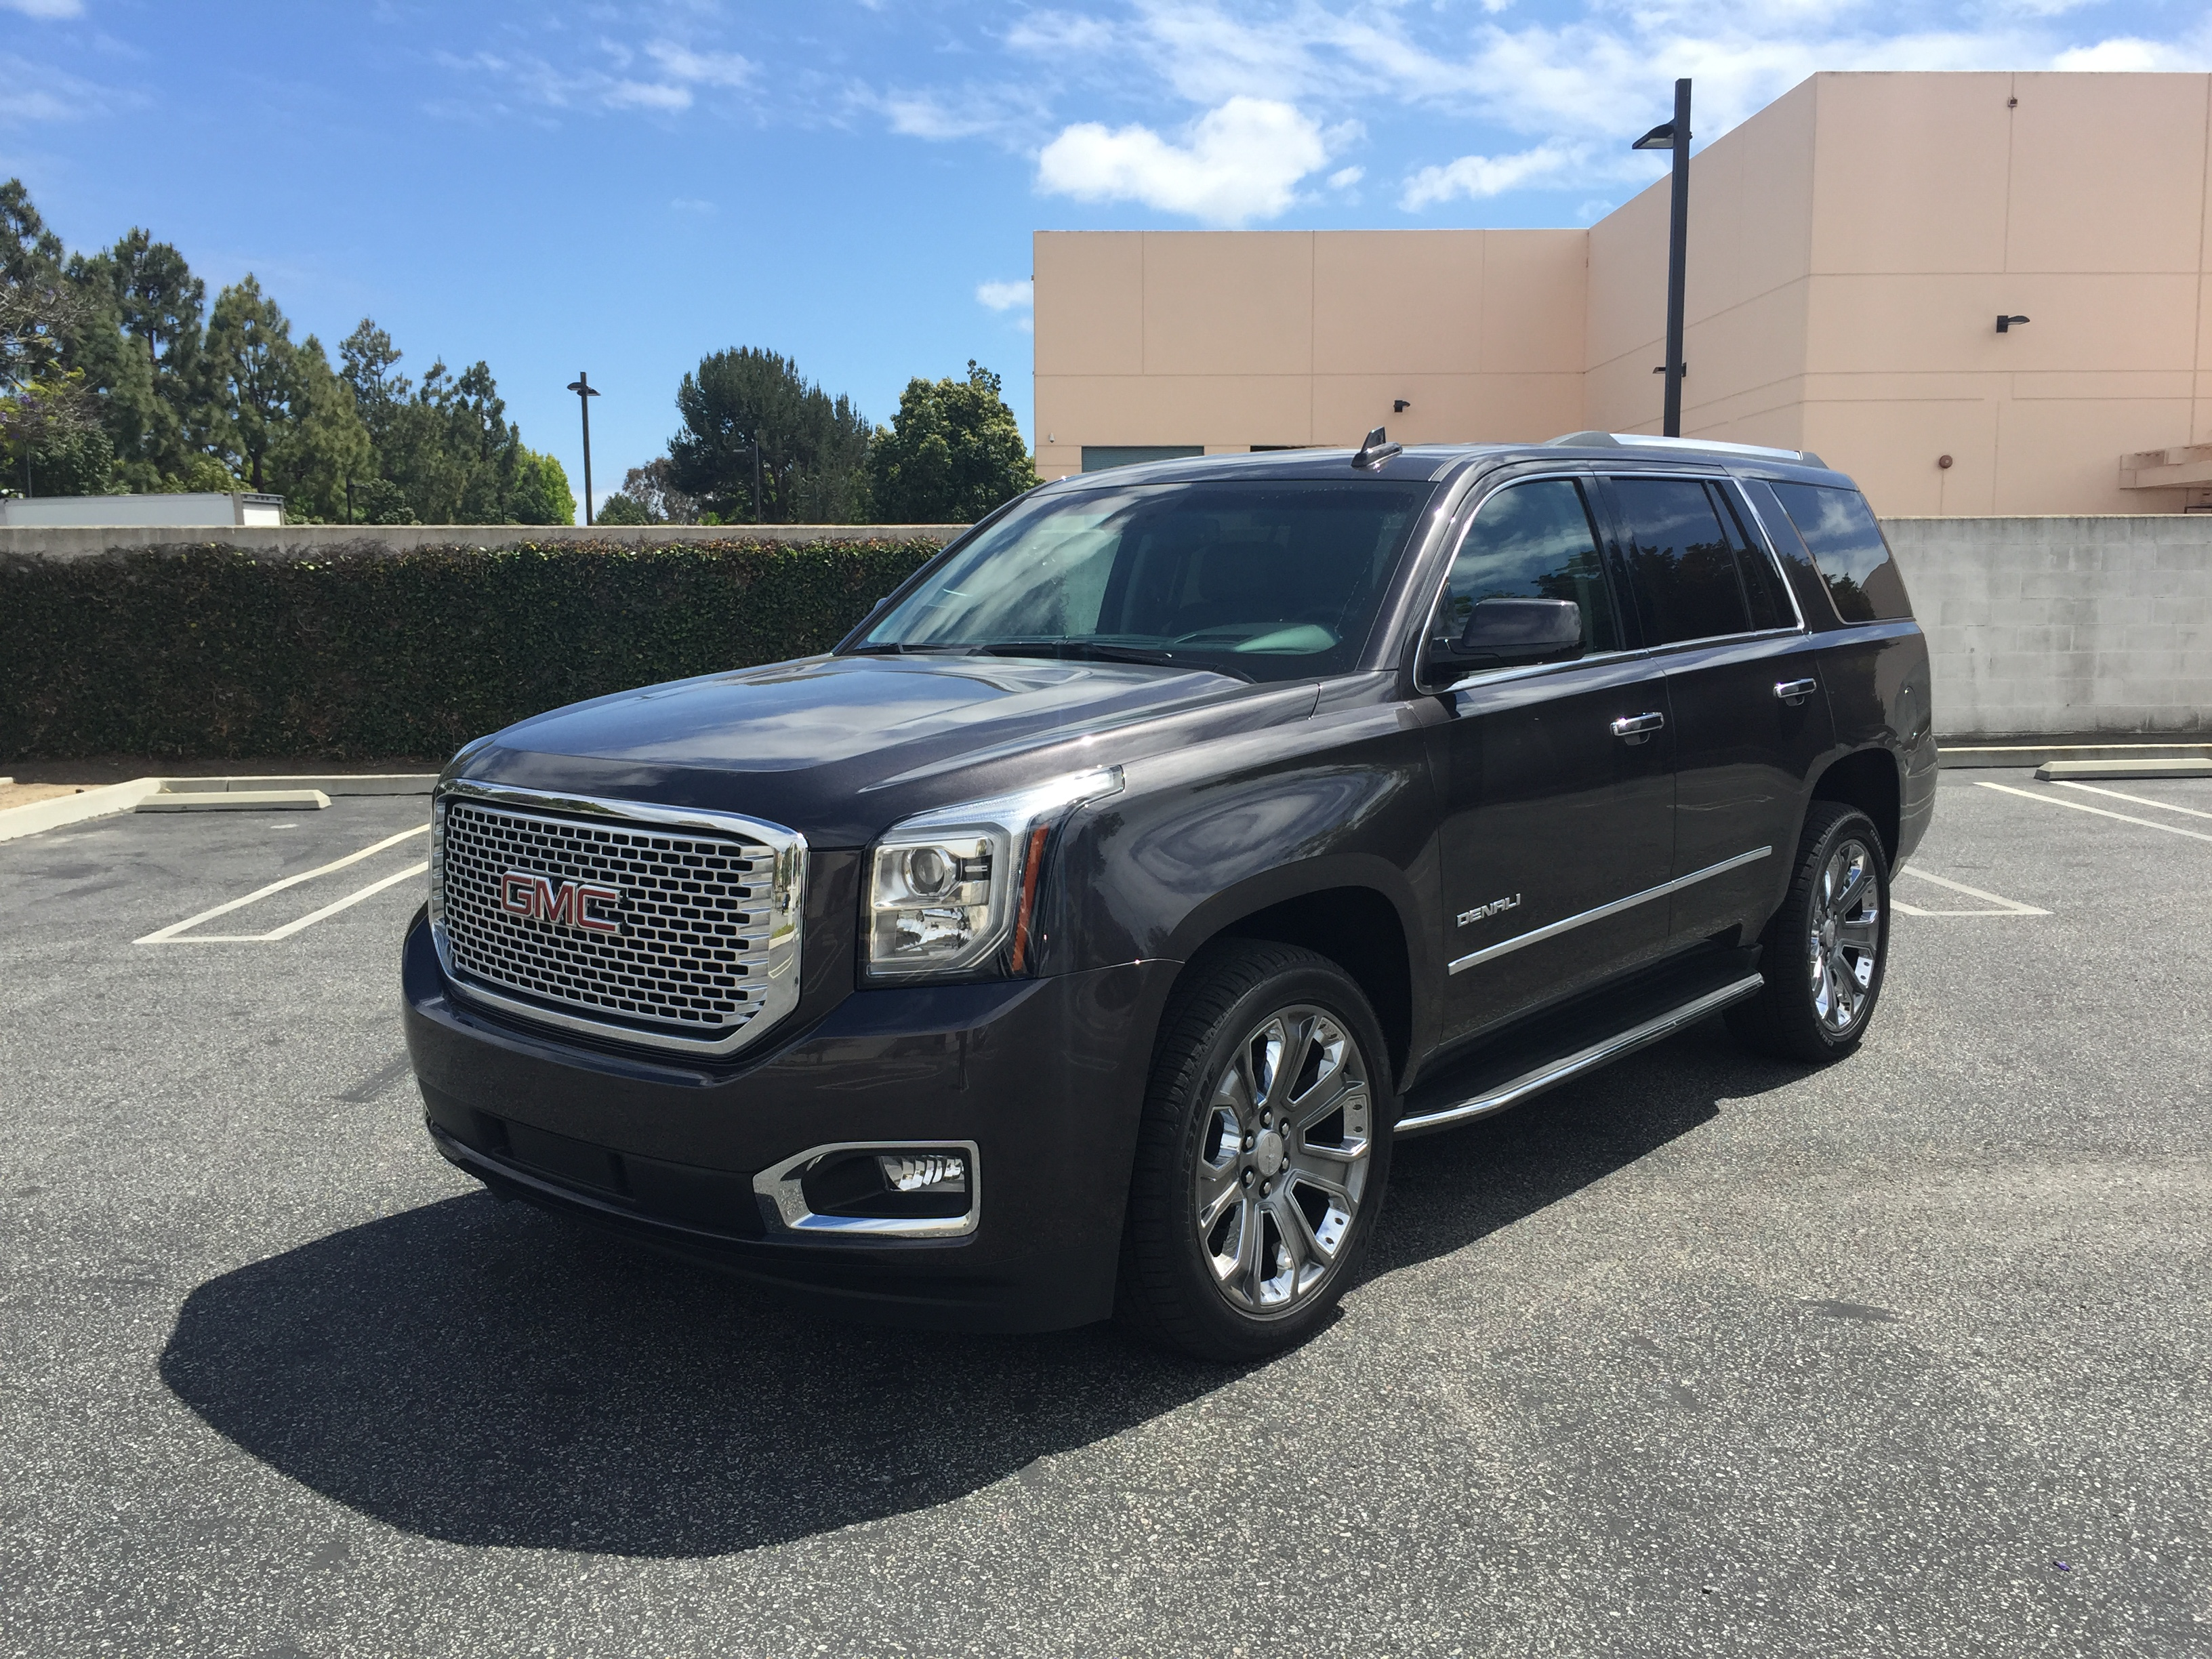 2016 gmc yukon xl denali driving notes fleet financials. Black Bedroom Furniture Sets. Home Design Ideas